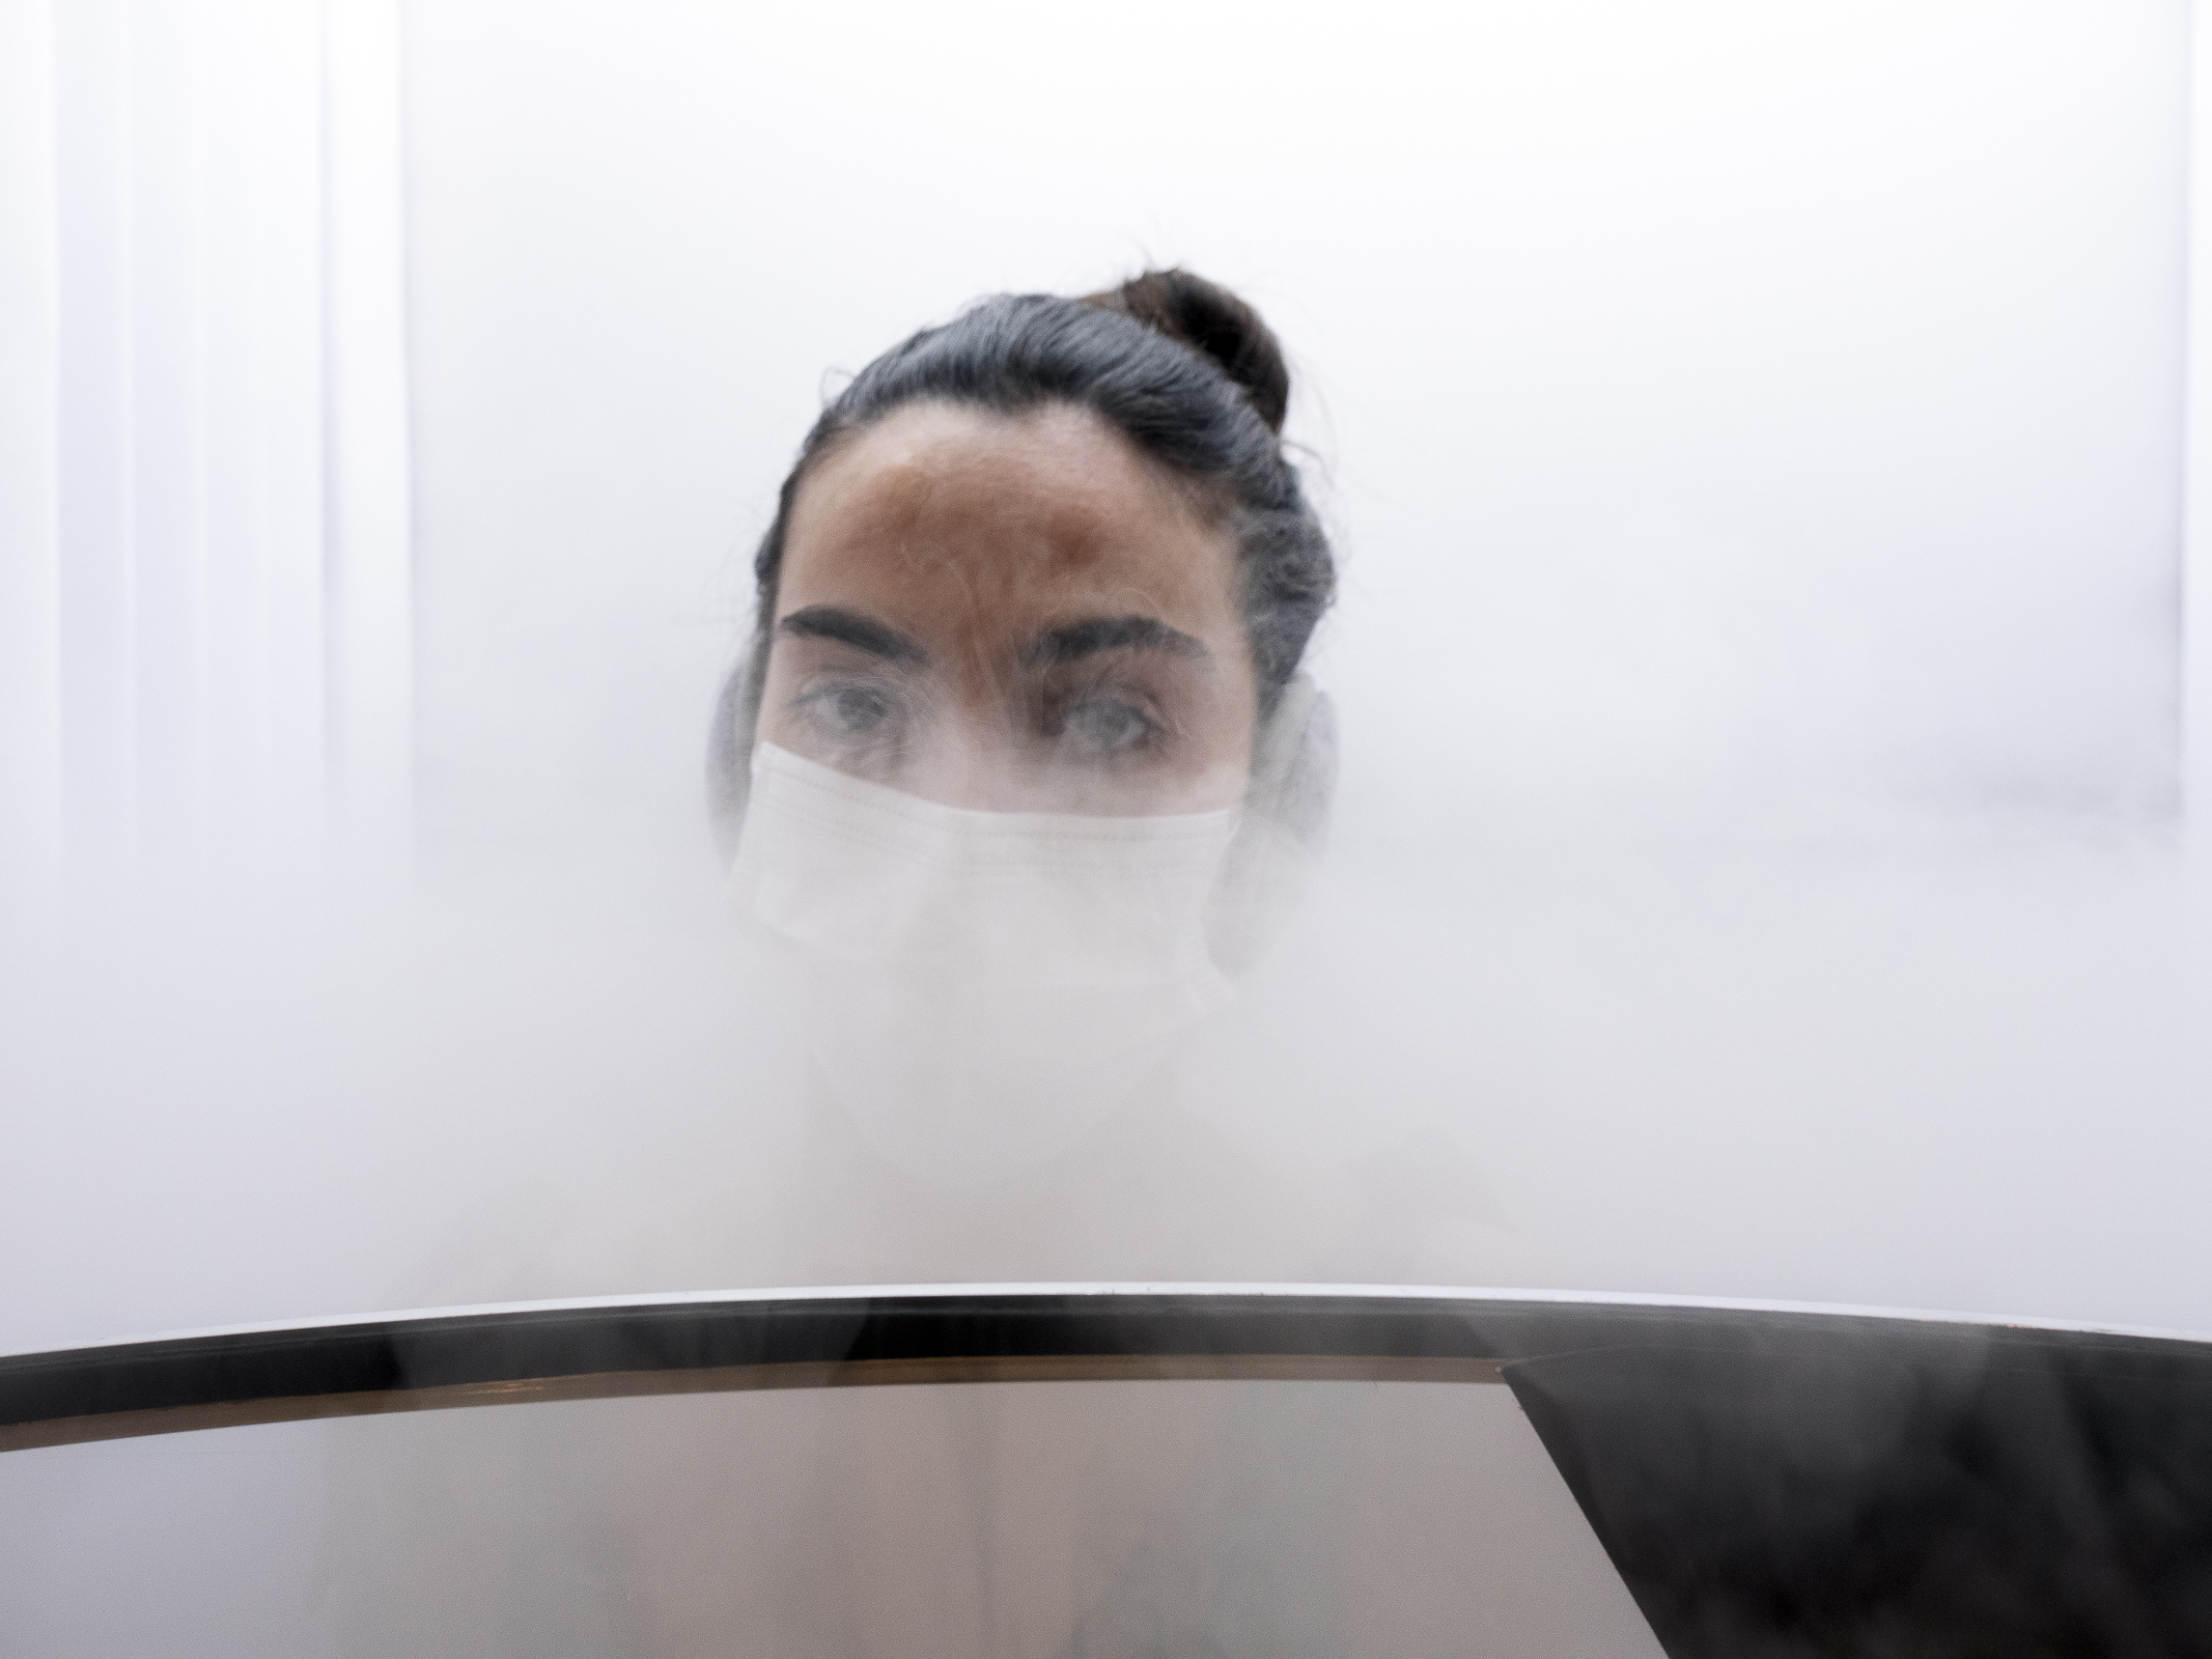 Whole Body Cryotherapy at Livkraft Wellness La Jolla